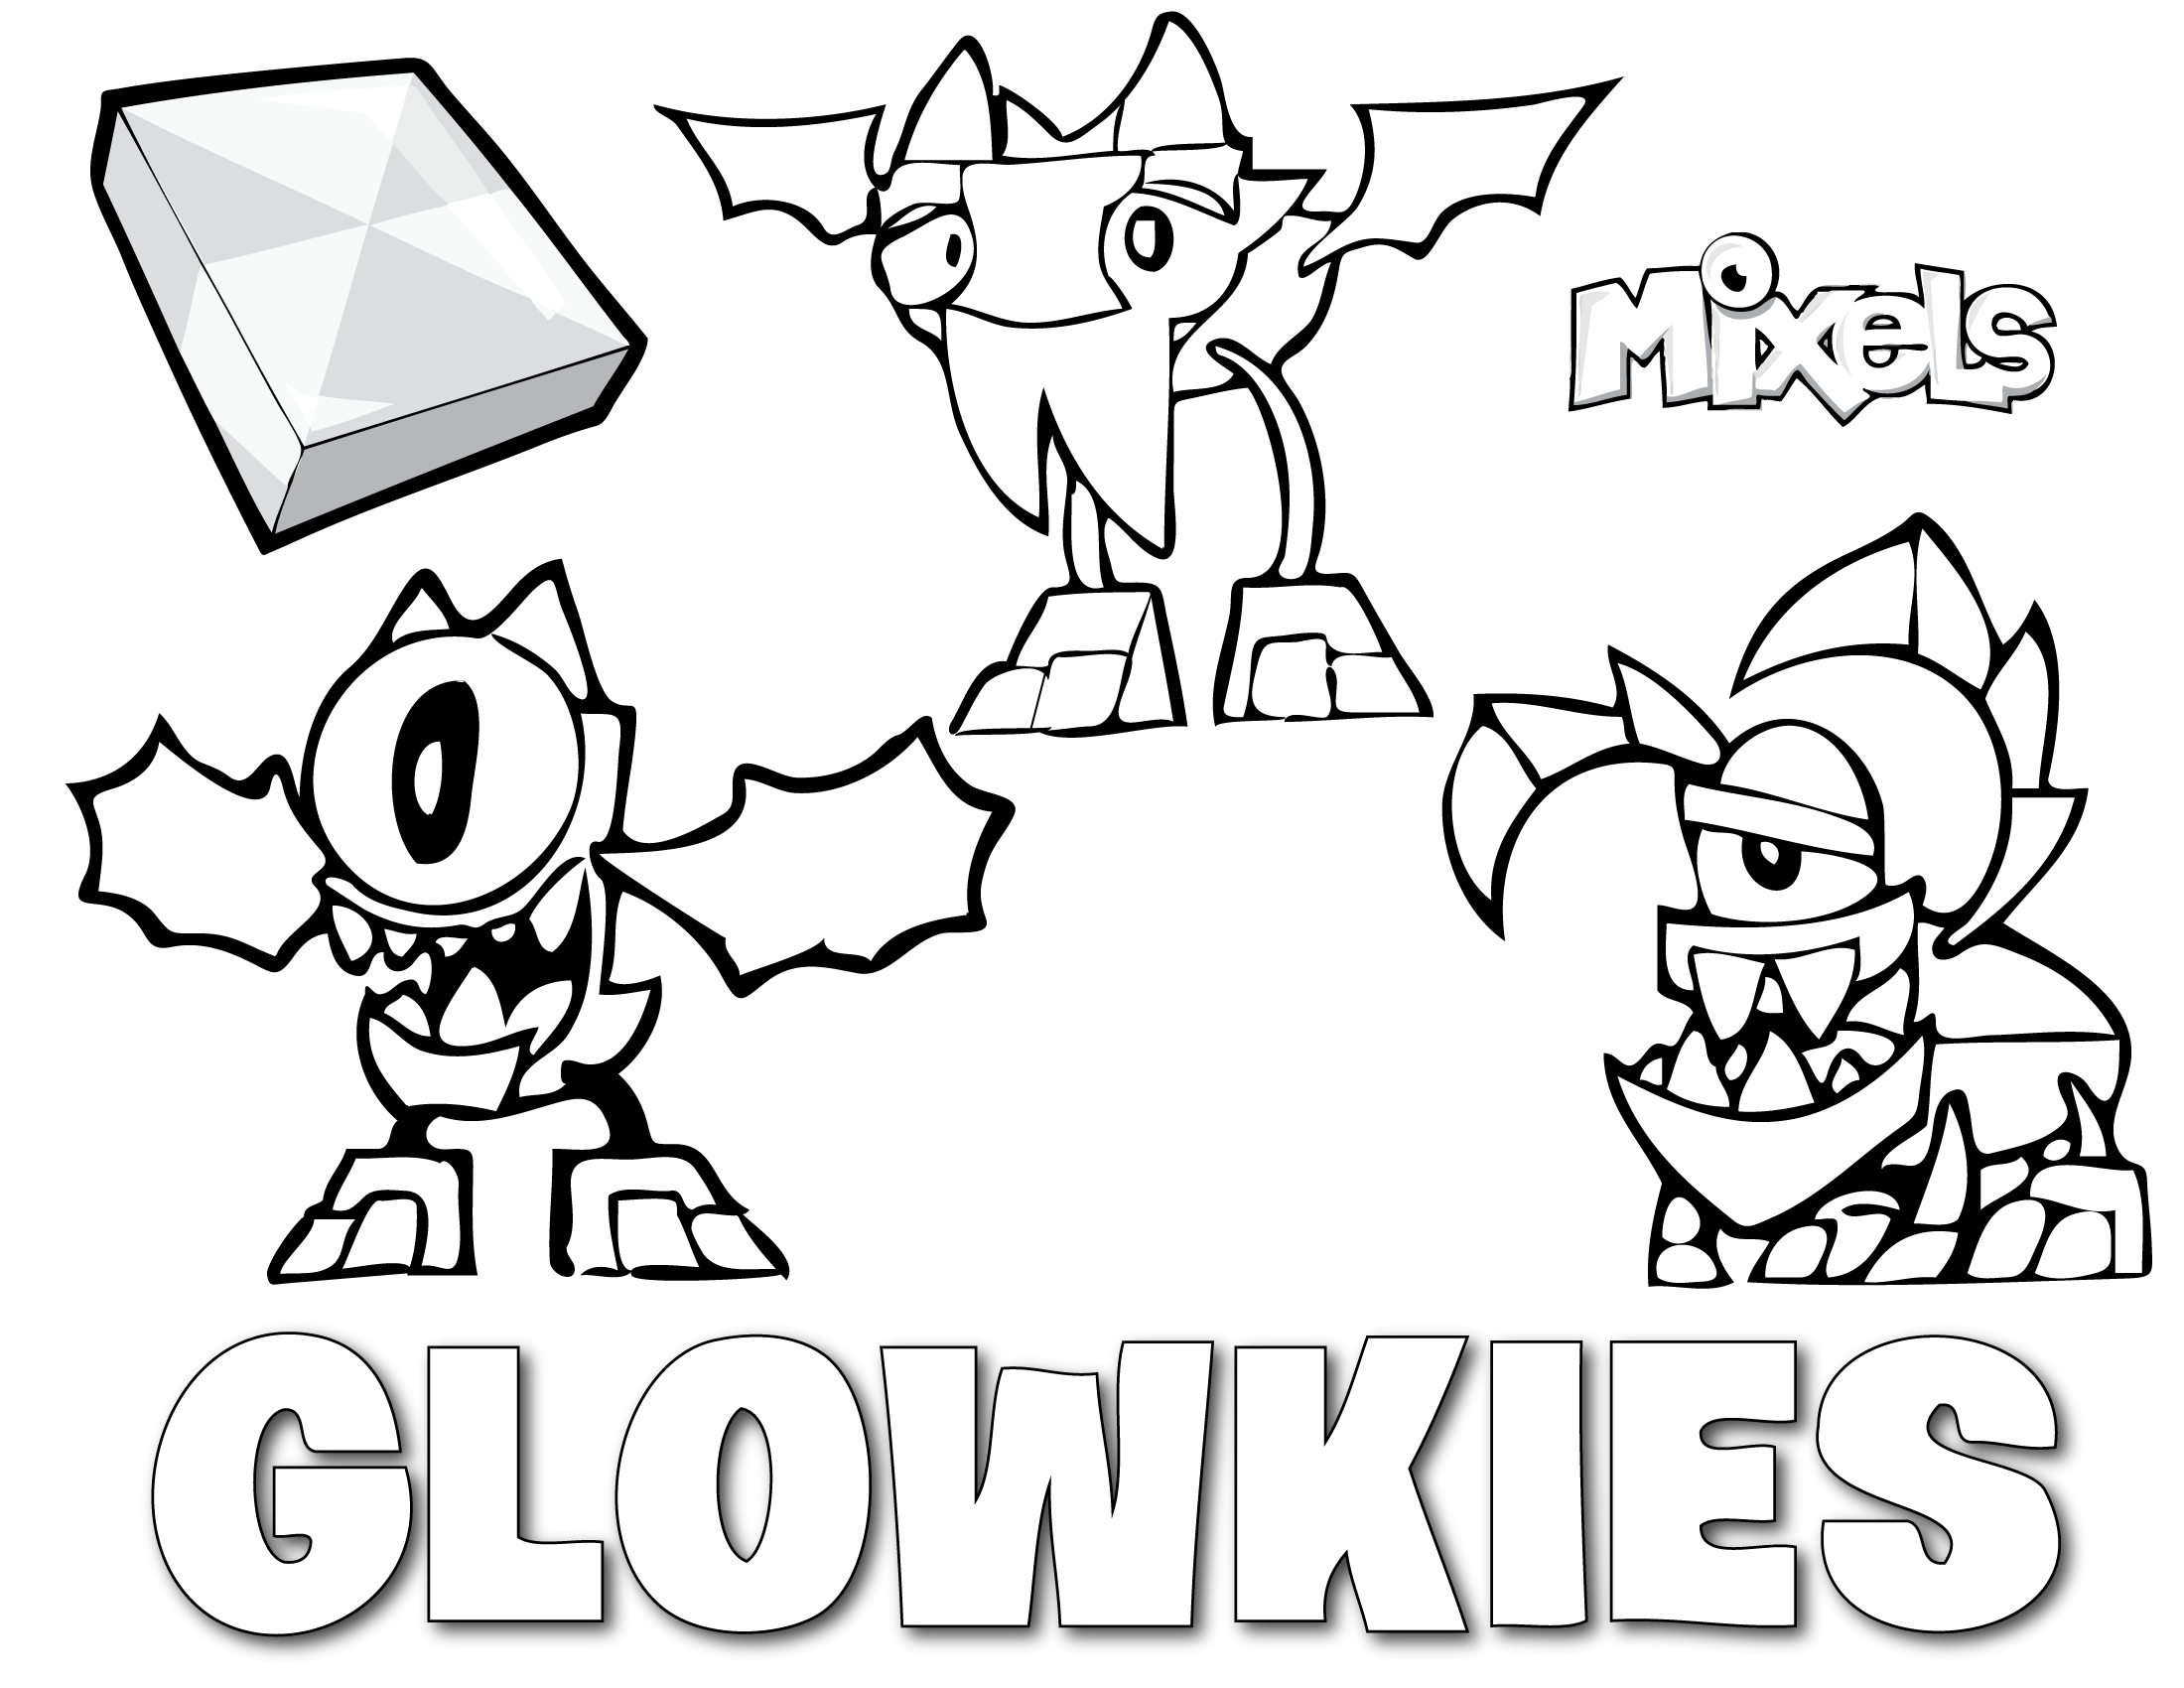 Mixels Coloring Pages Mixel Coloring Page  My Little Corner  Page 2  Mixels